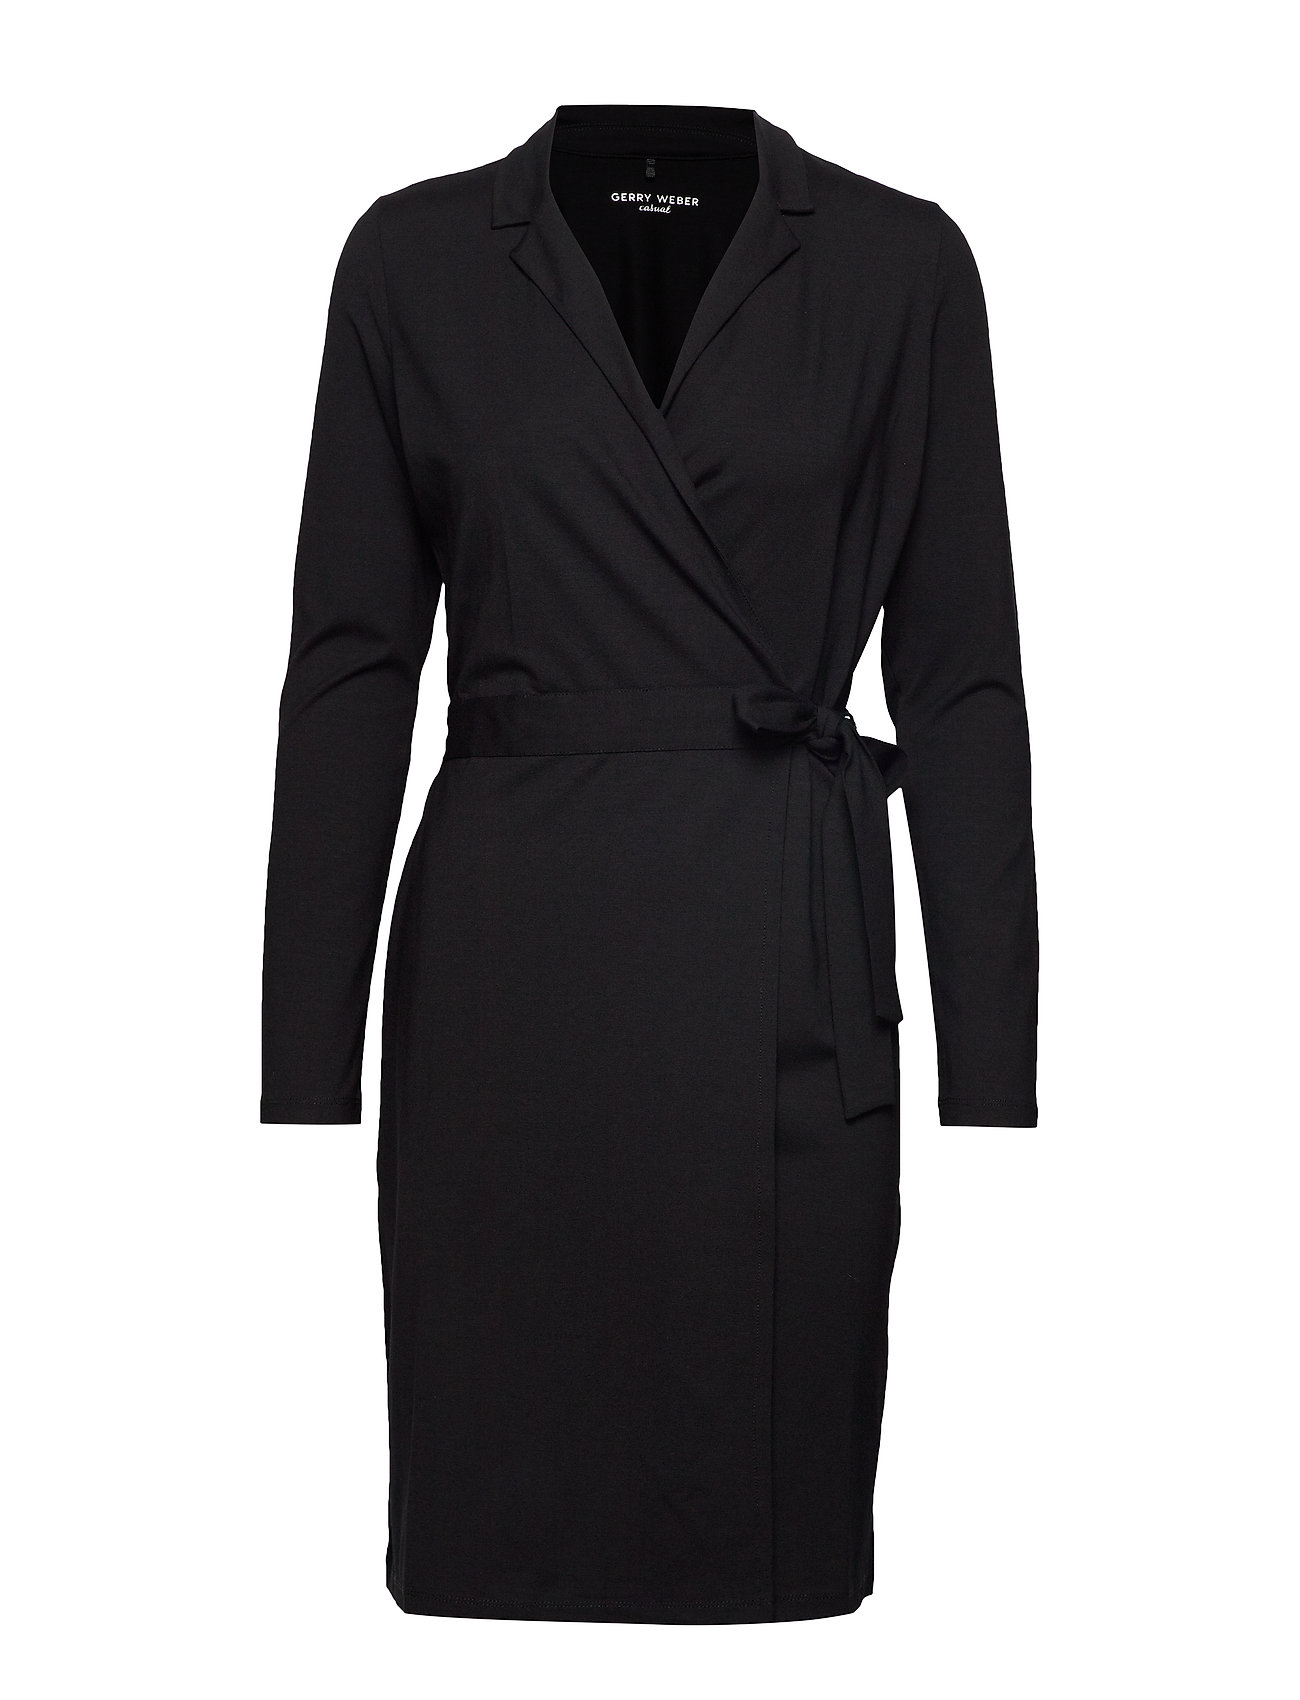 Gerry Weber Edition DRESS KNITTED FABRIC - BLACK